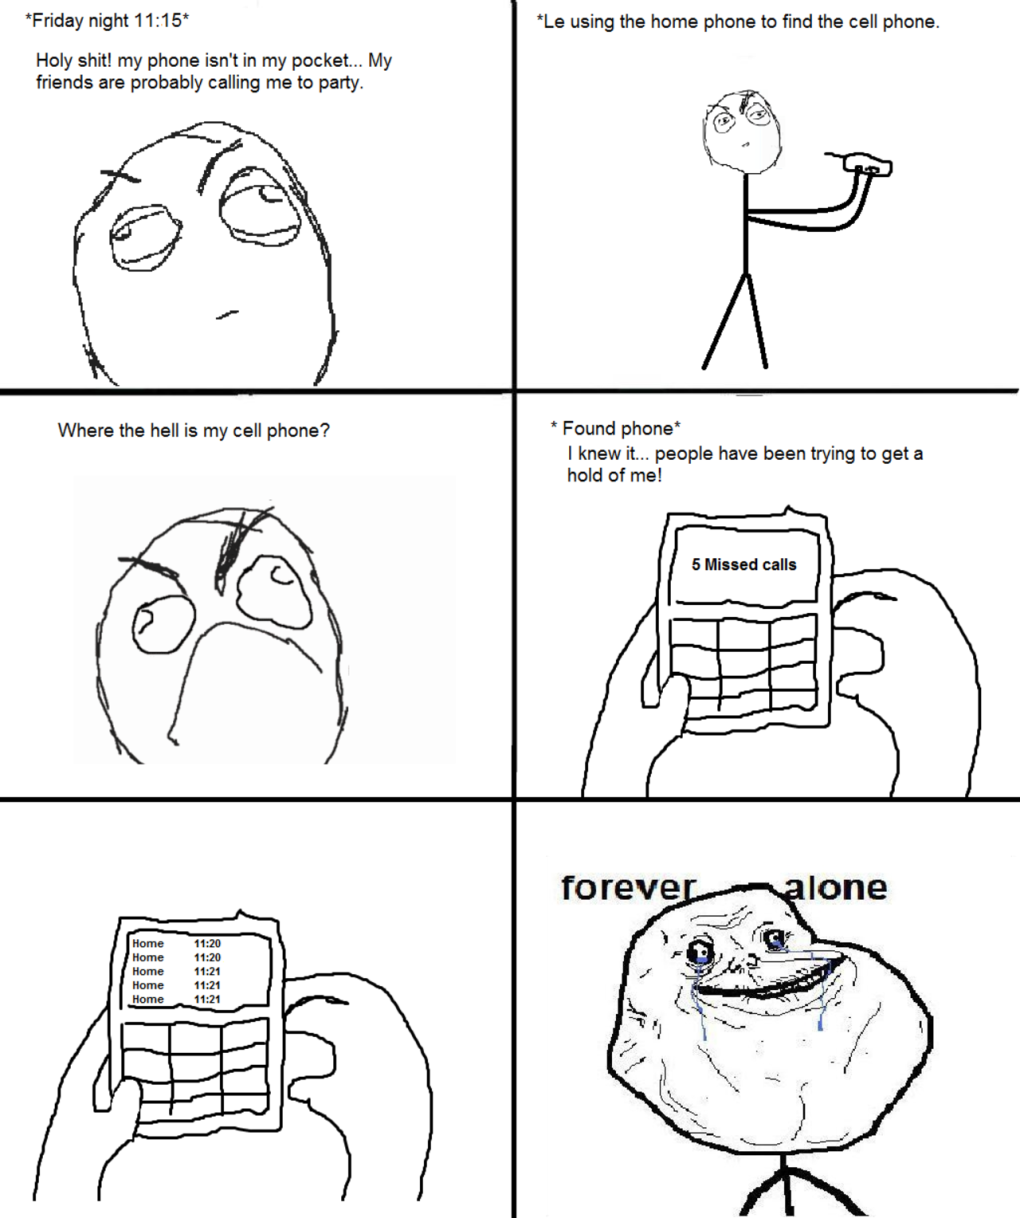 forever alone finding your cellphone